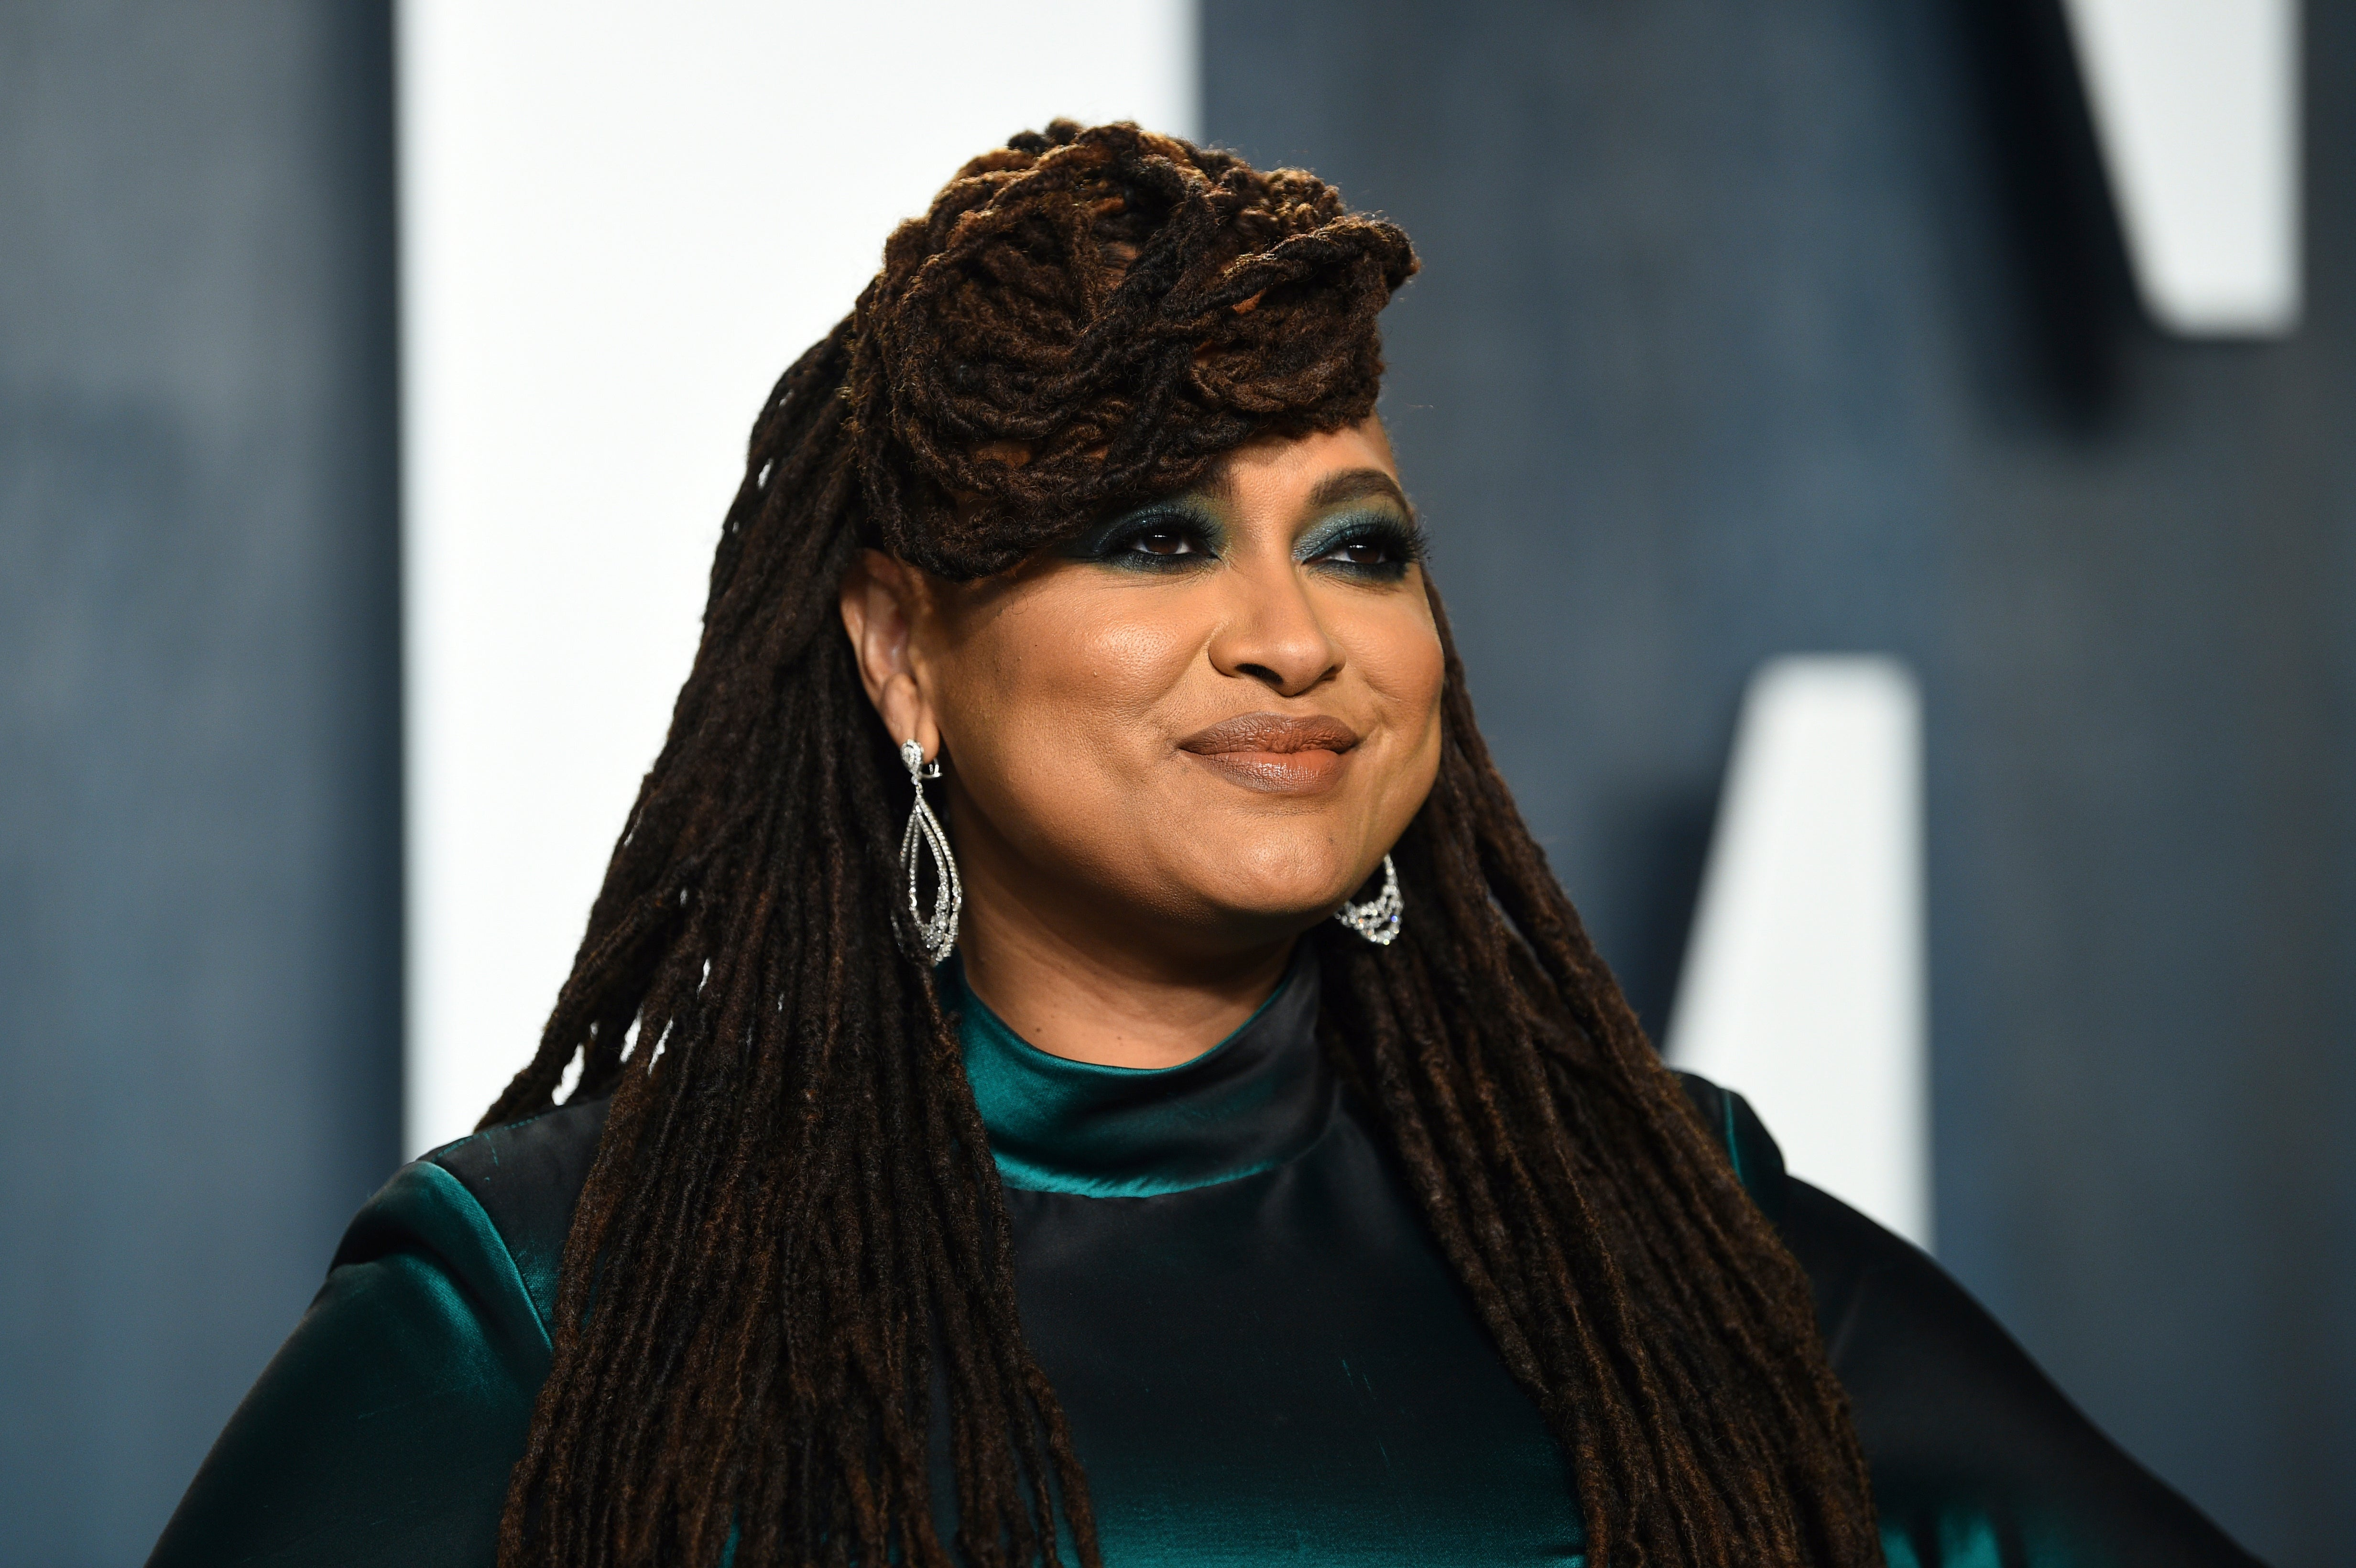 Ava DuVernay, her company honored by MacDowell artist colony